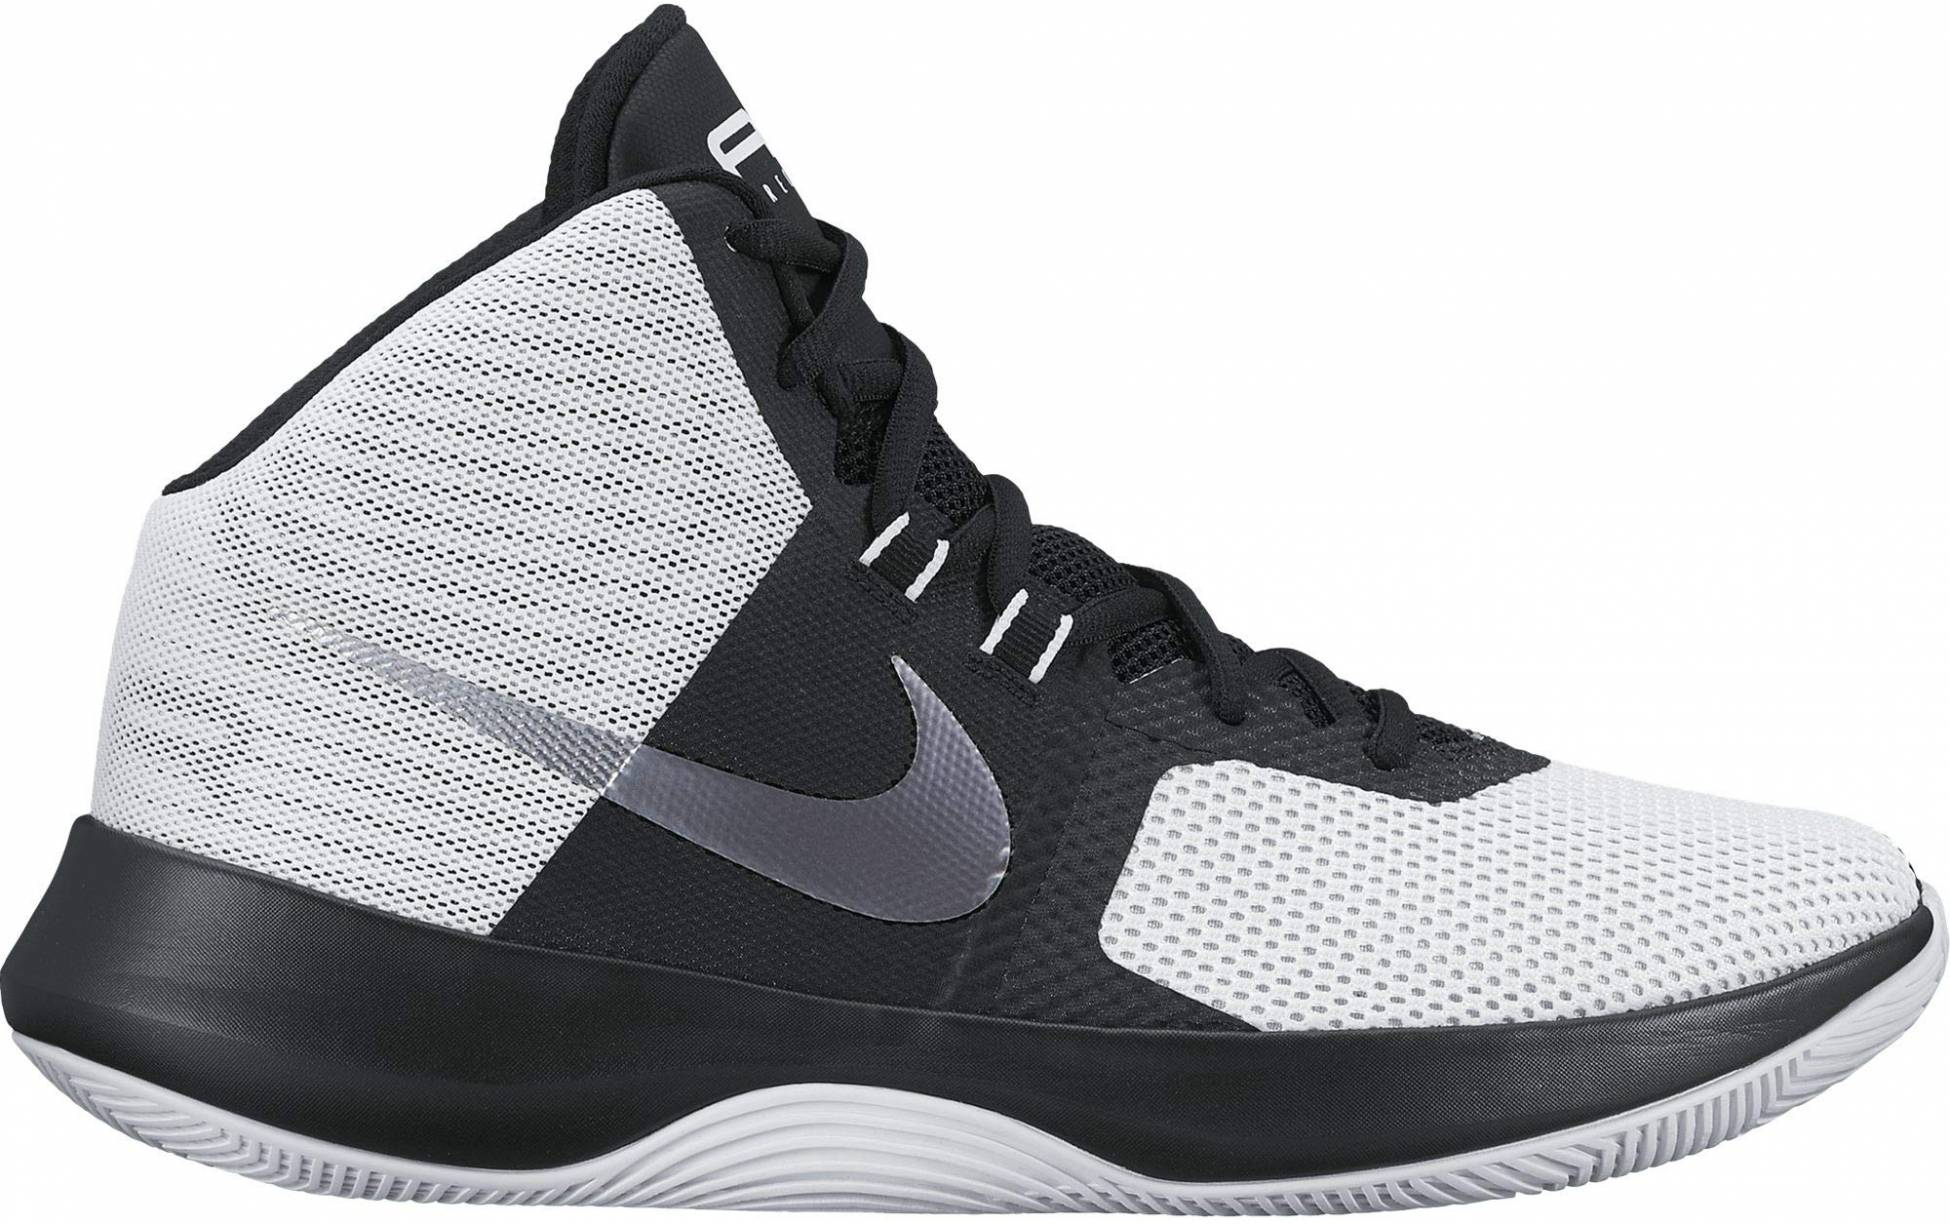 85 + Review of Nike Air Precision